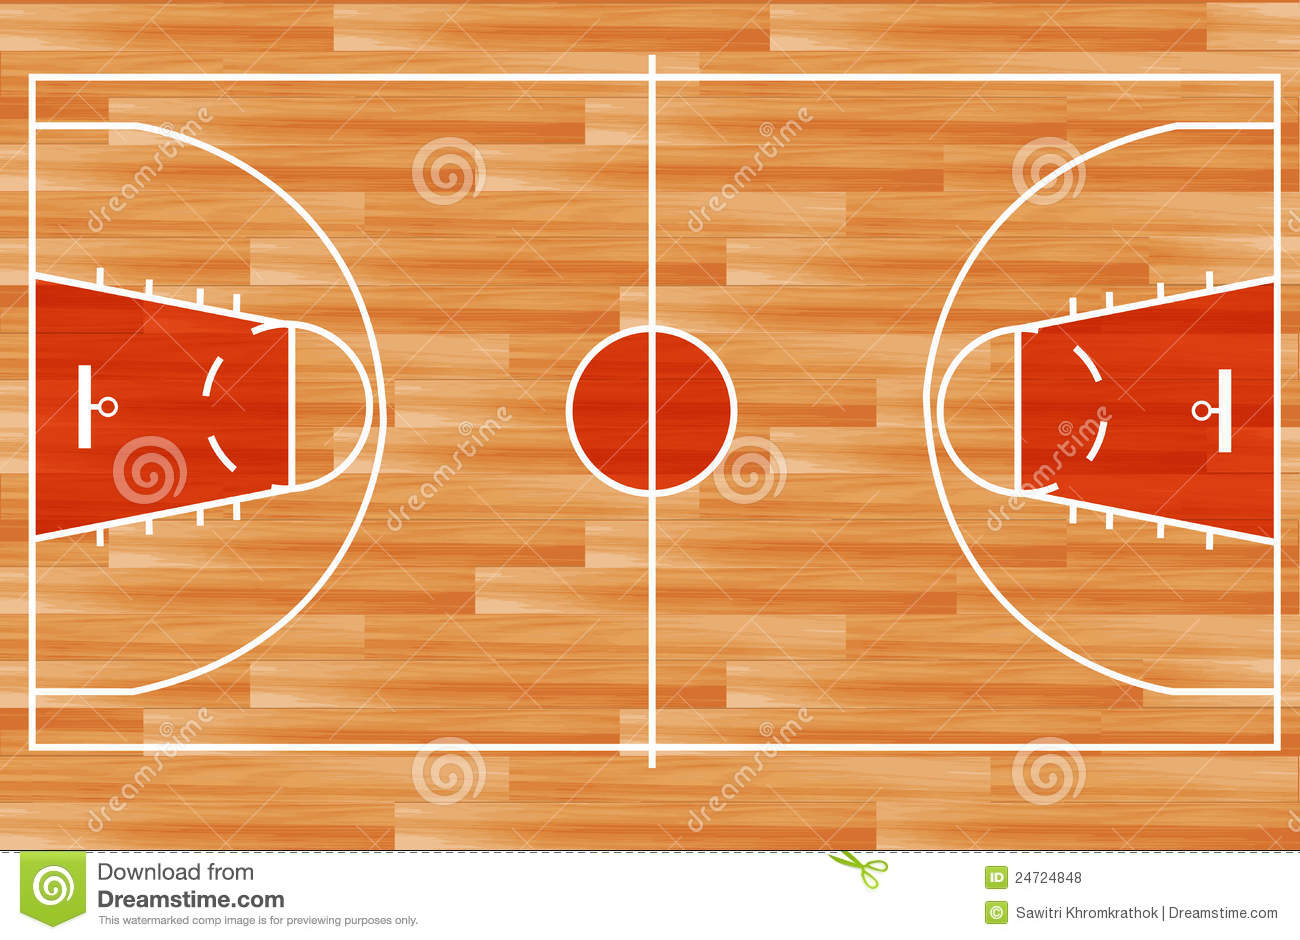 Plan En Ligne 2d Vector Wooden Basketball Court Royalty Free Stock Photos